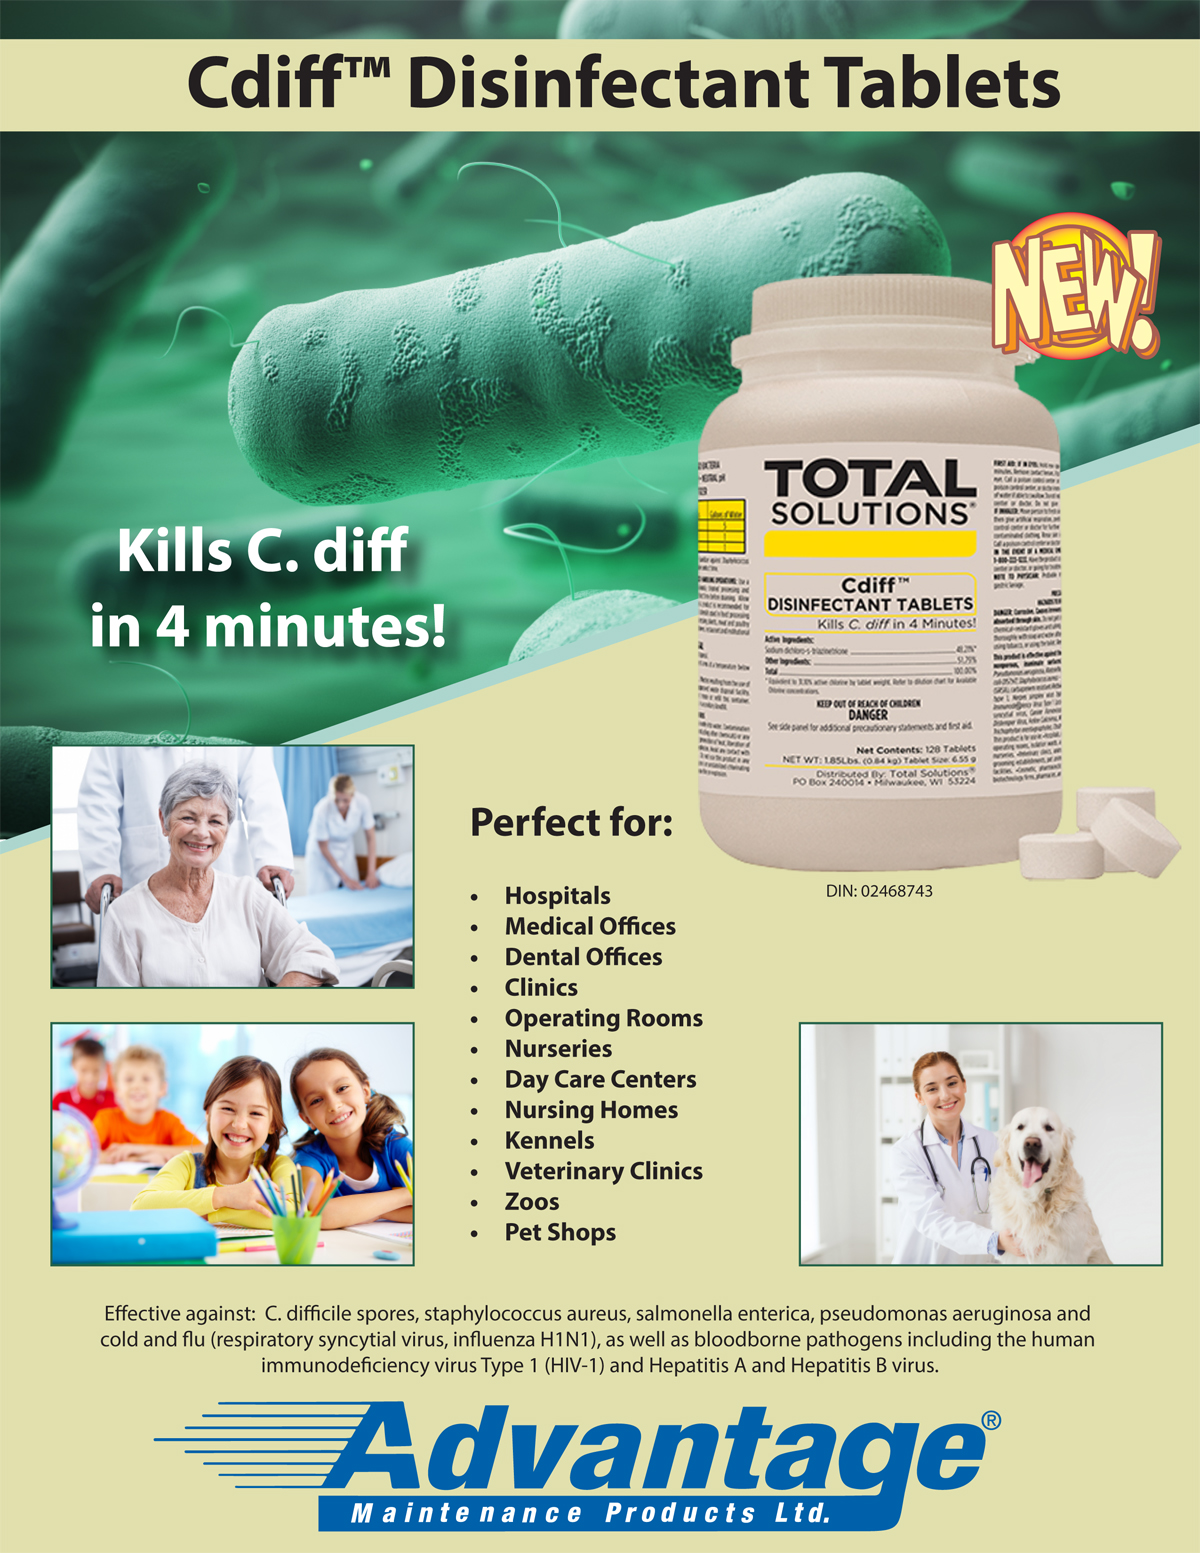 Advantage Maintenance Products :: Cdiff Disinfecting Tablets